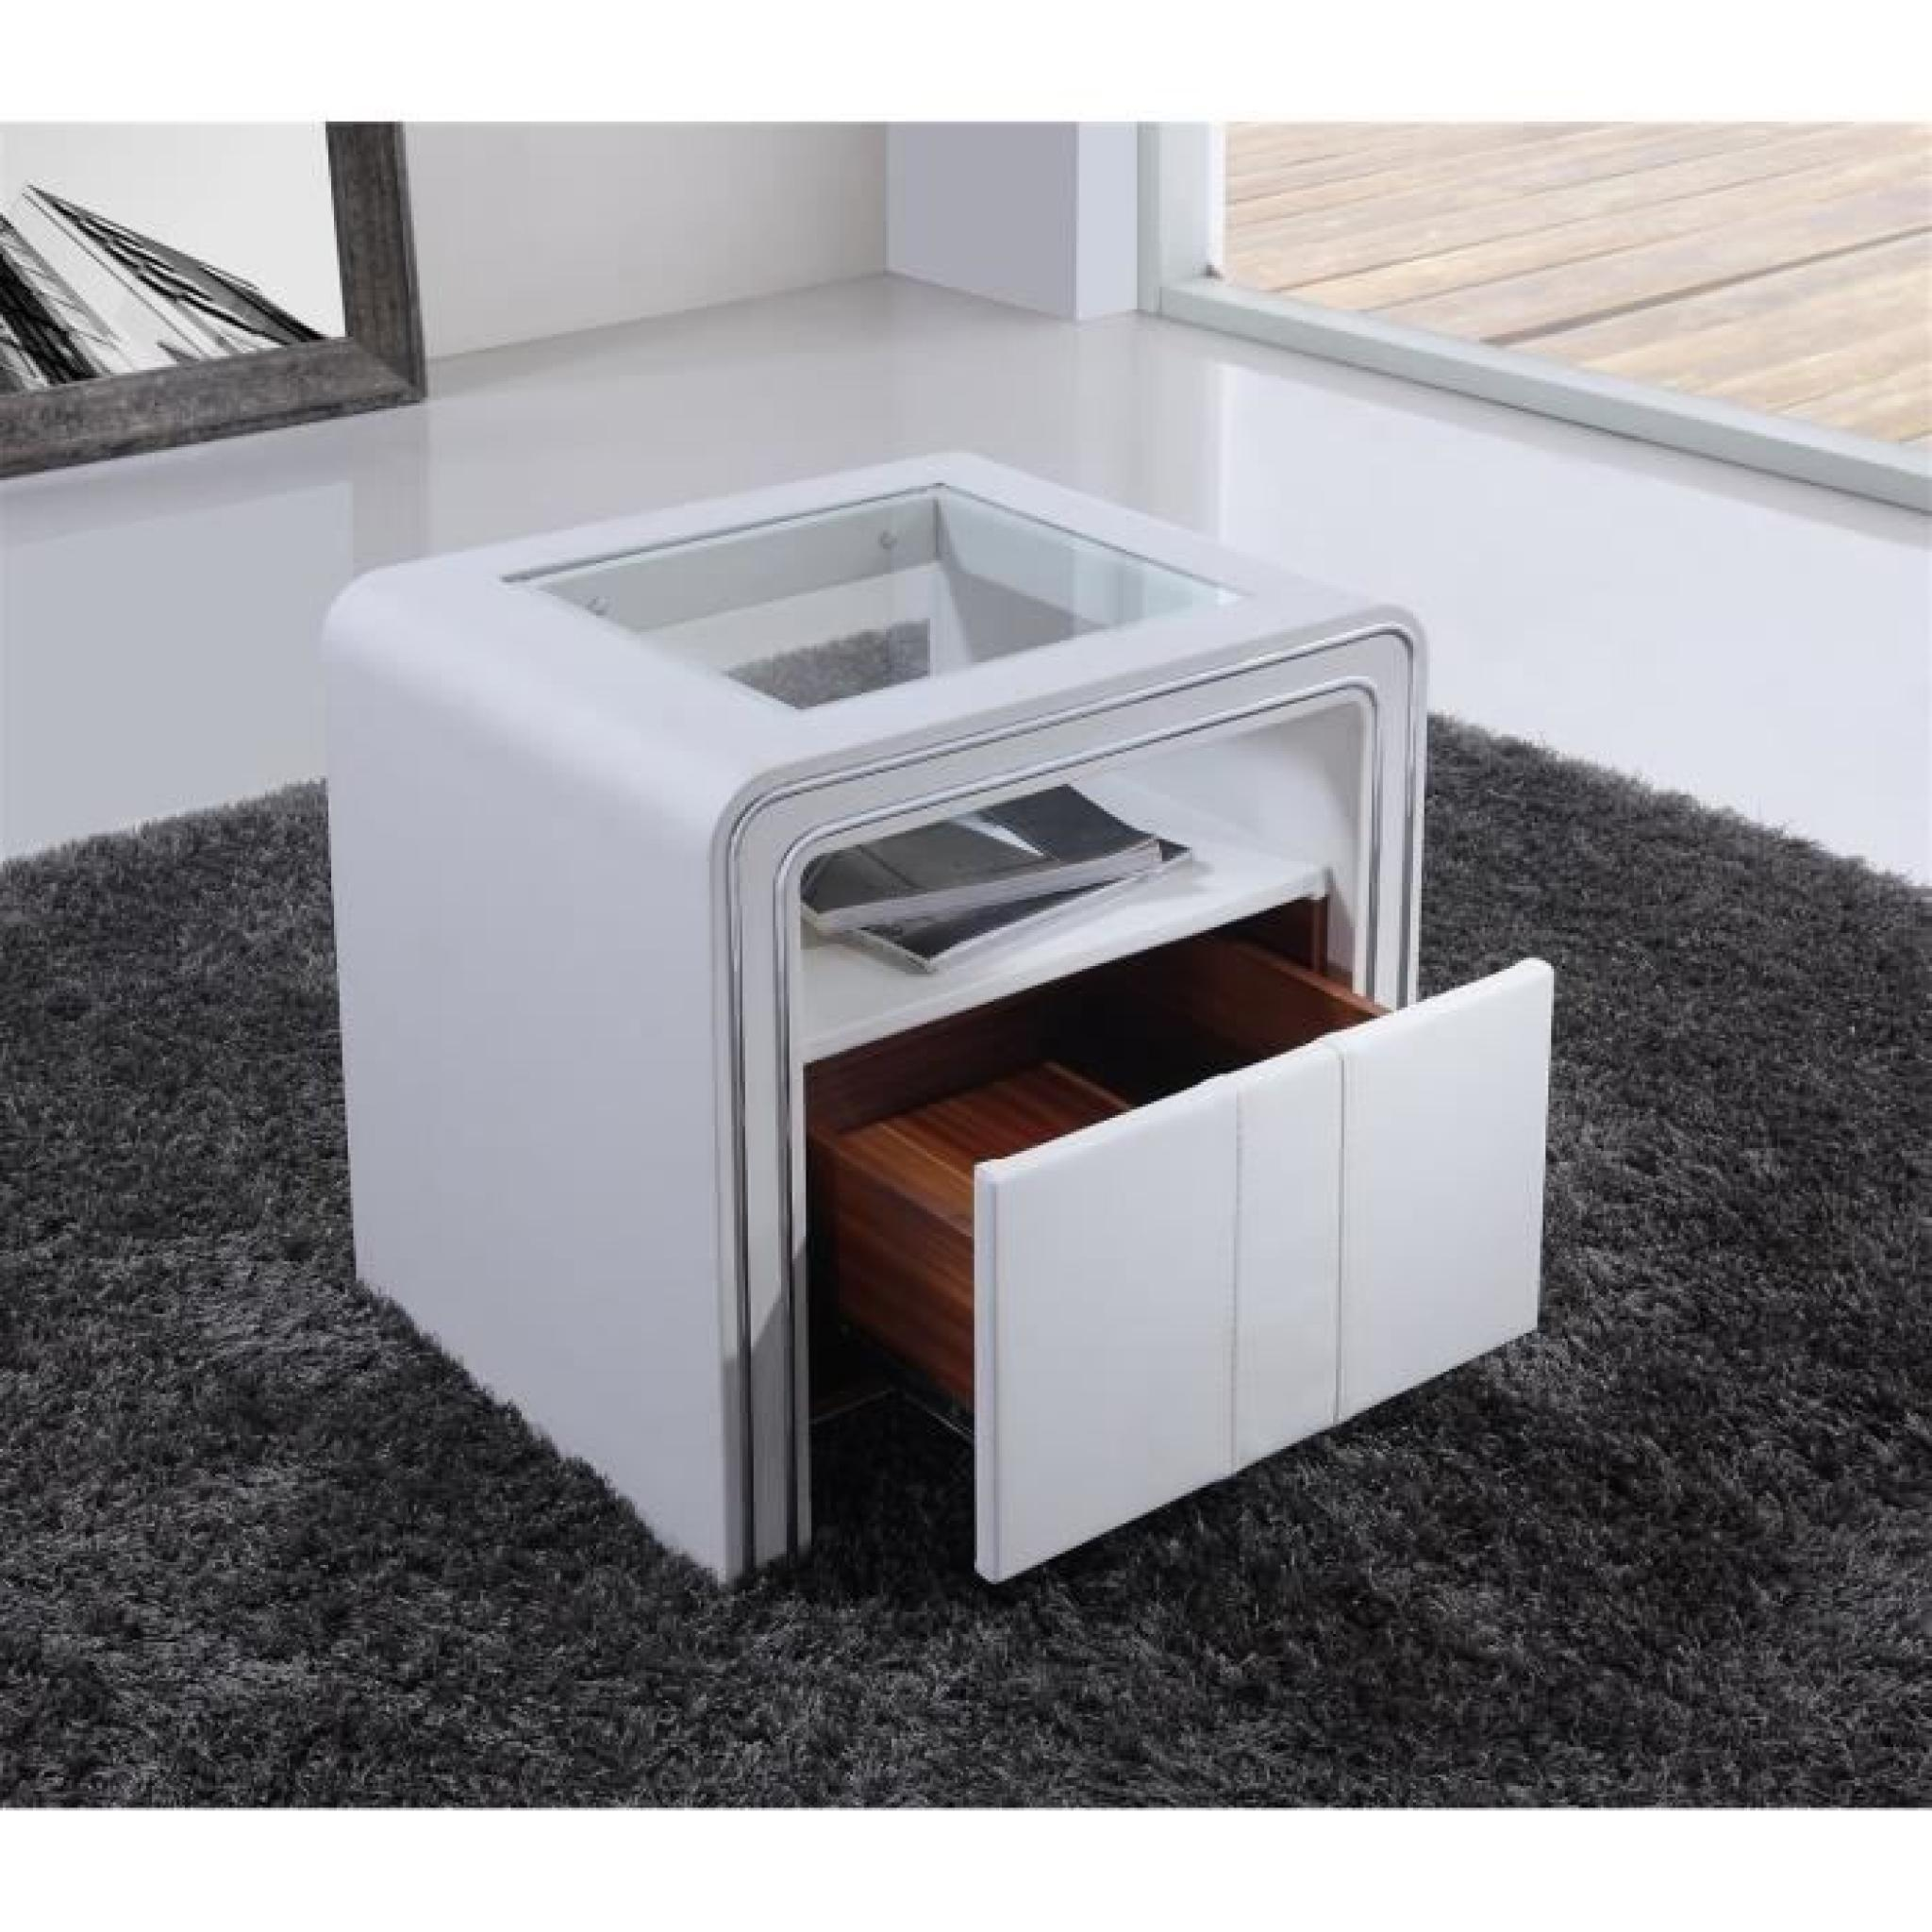 Table de chevet s85 blanc simili cuir achat vente table - Table chevet pas cher ...